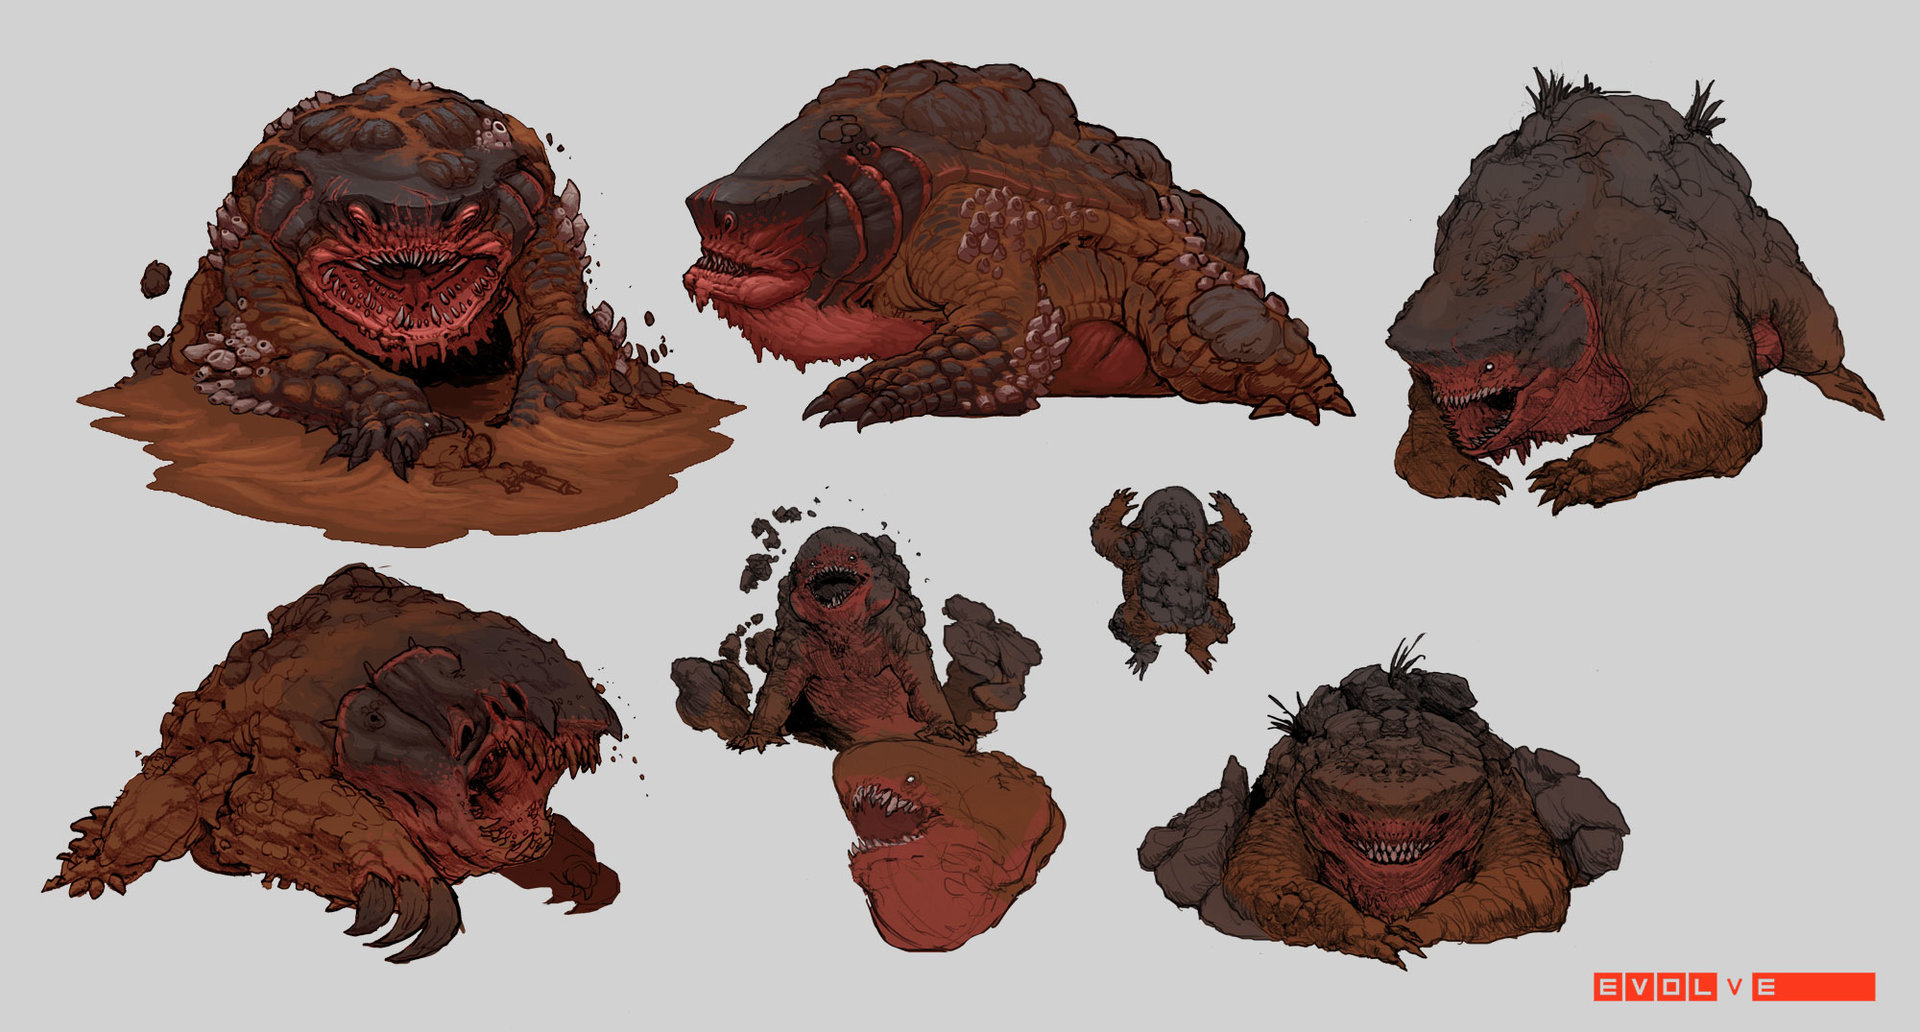 Evolve concept art picture megamouth